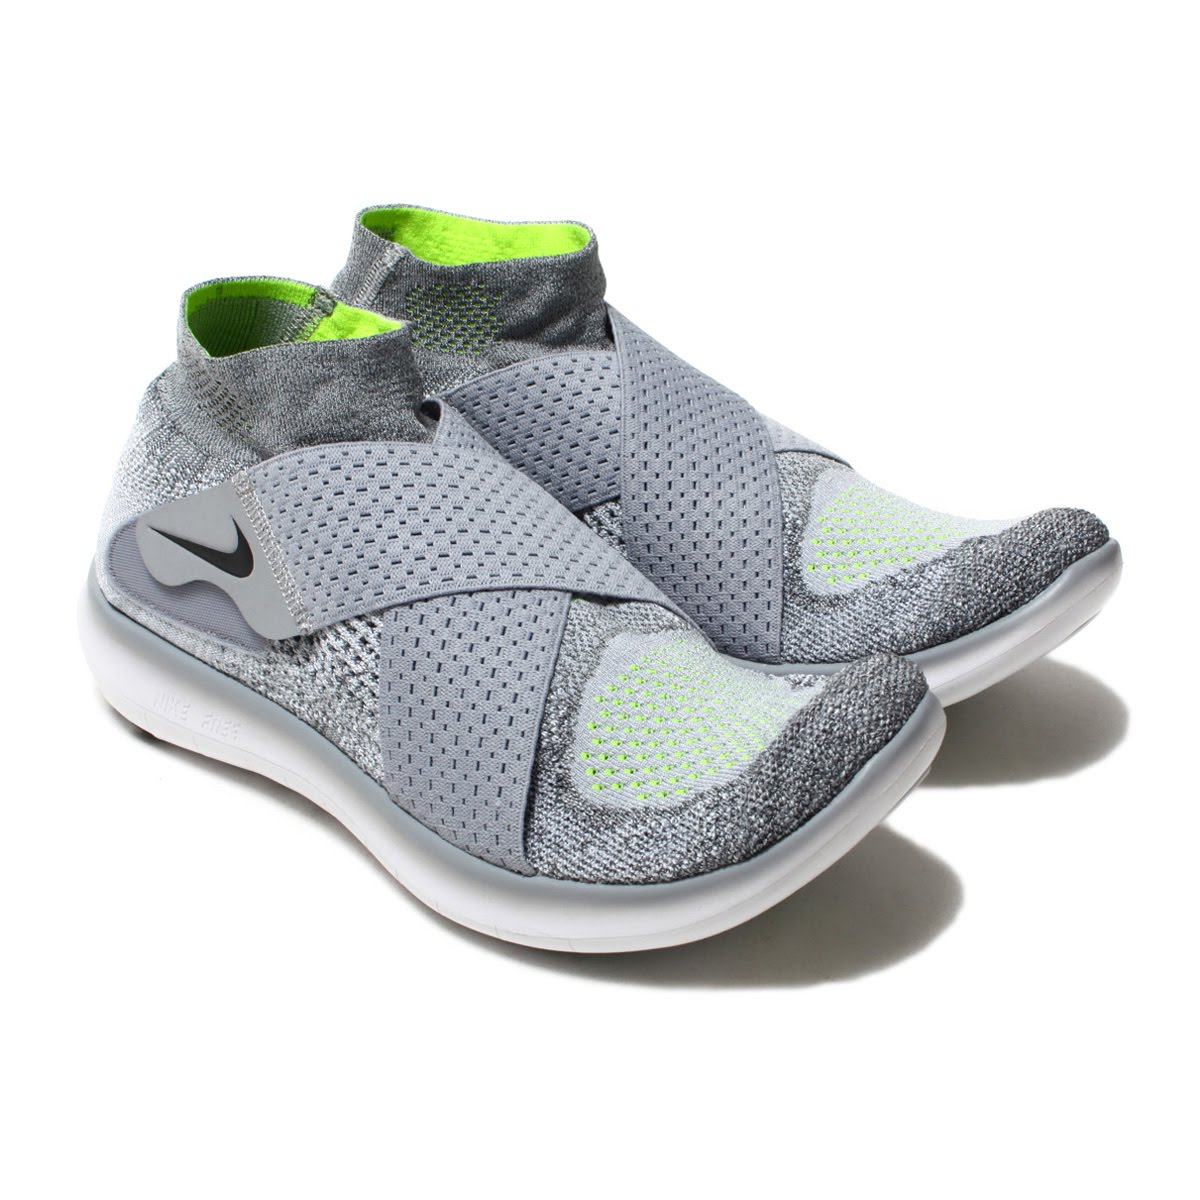 new product f1c9c c1c58 Nike-free orchid motion fly knit 2017 letting a natural run of Nike Running  accelerate more. Out sole of adjustable オーゼティックパターン which just ...